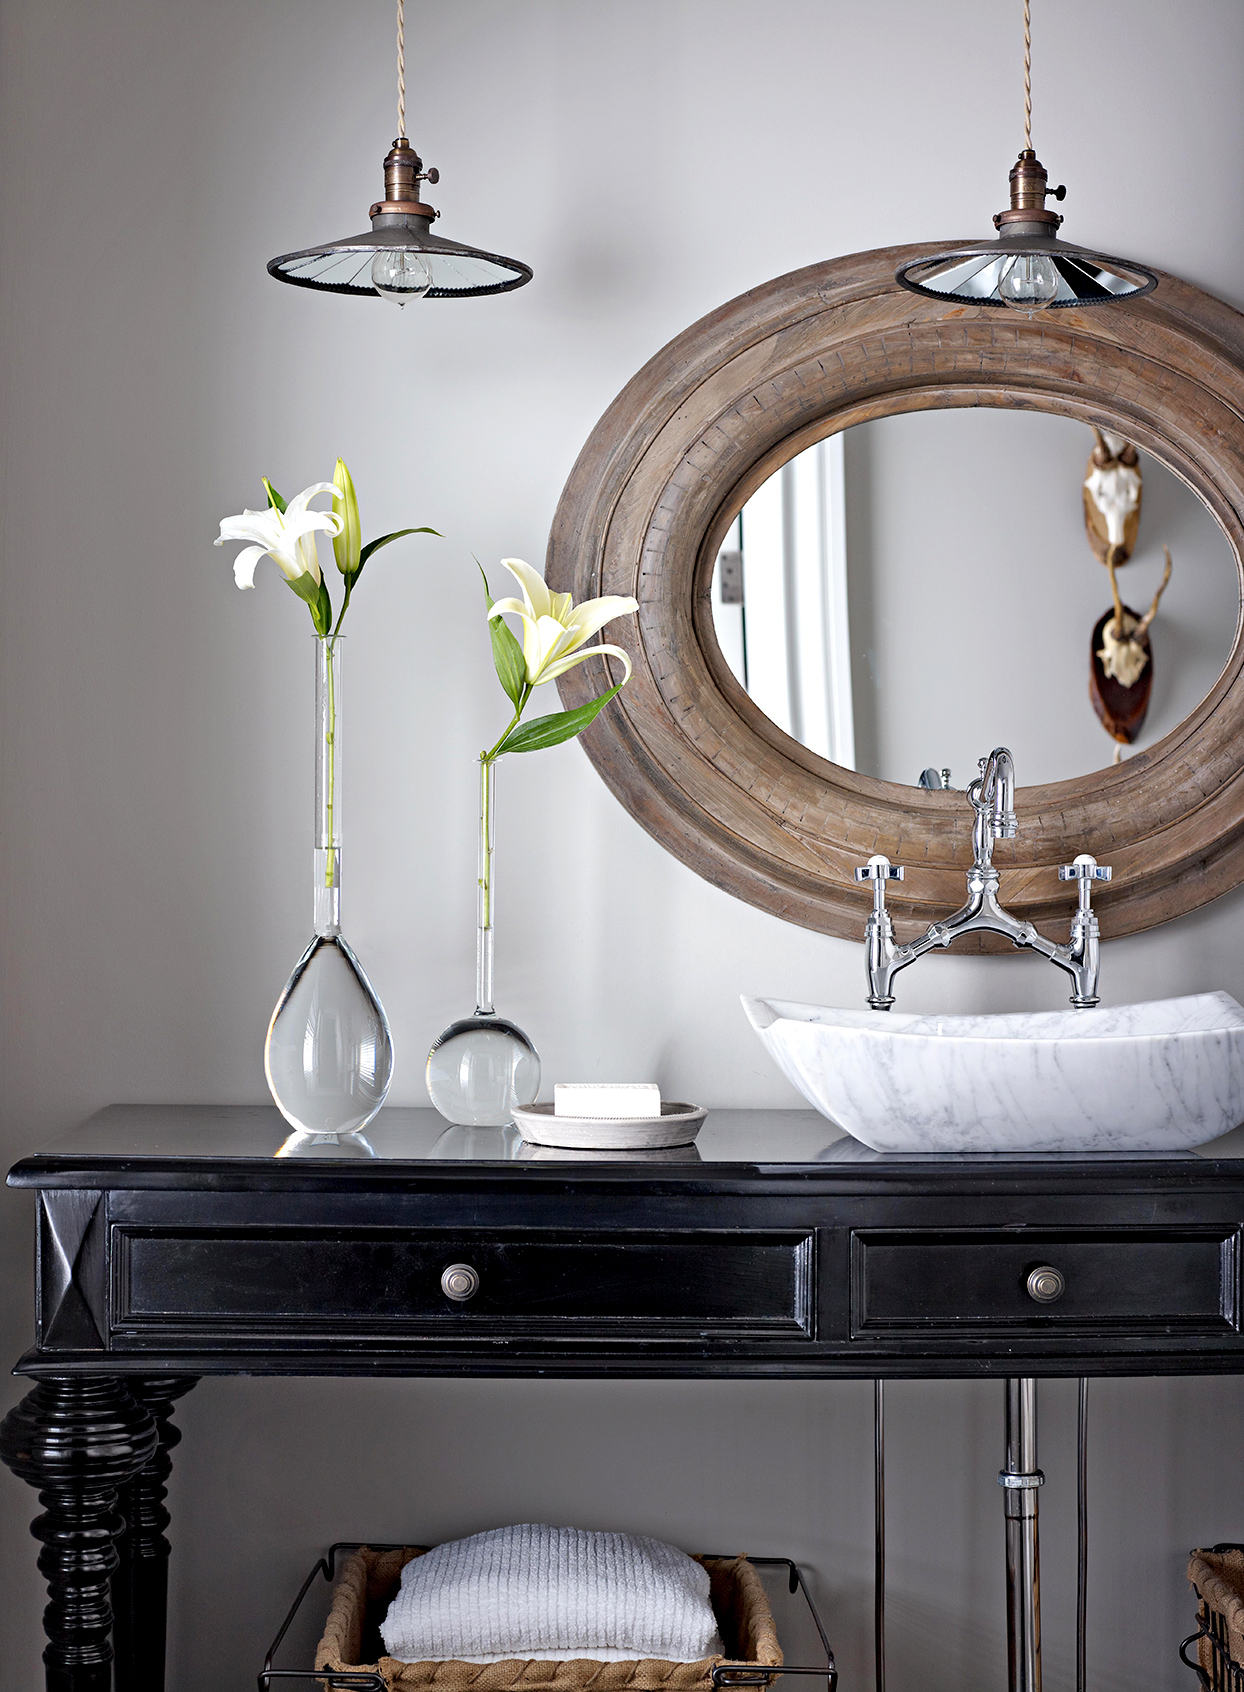 Bathroom with black cabinet and flowers